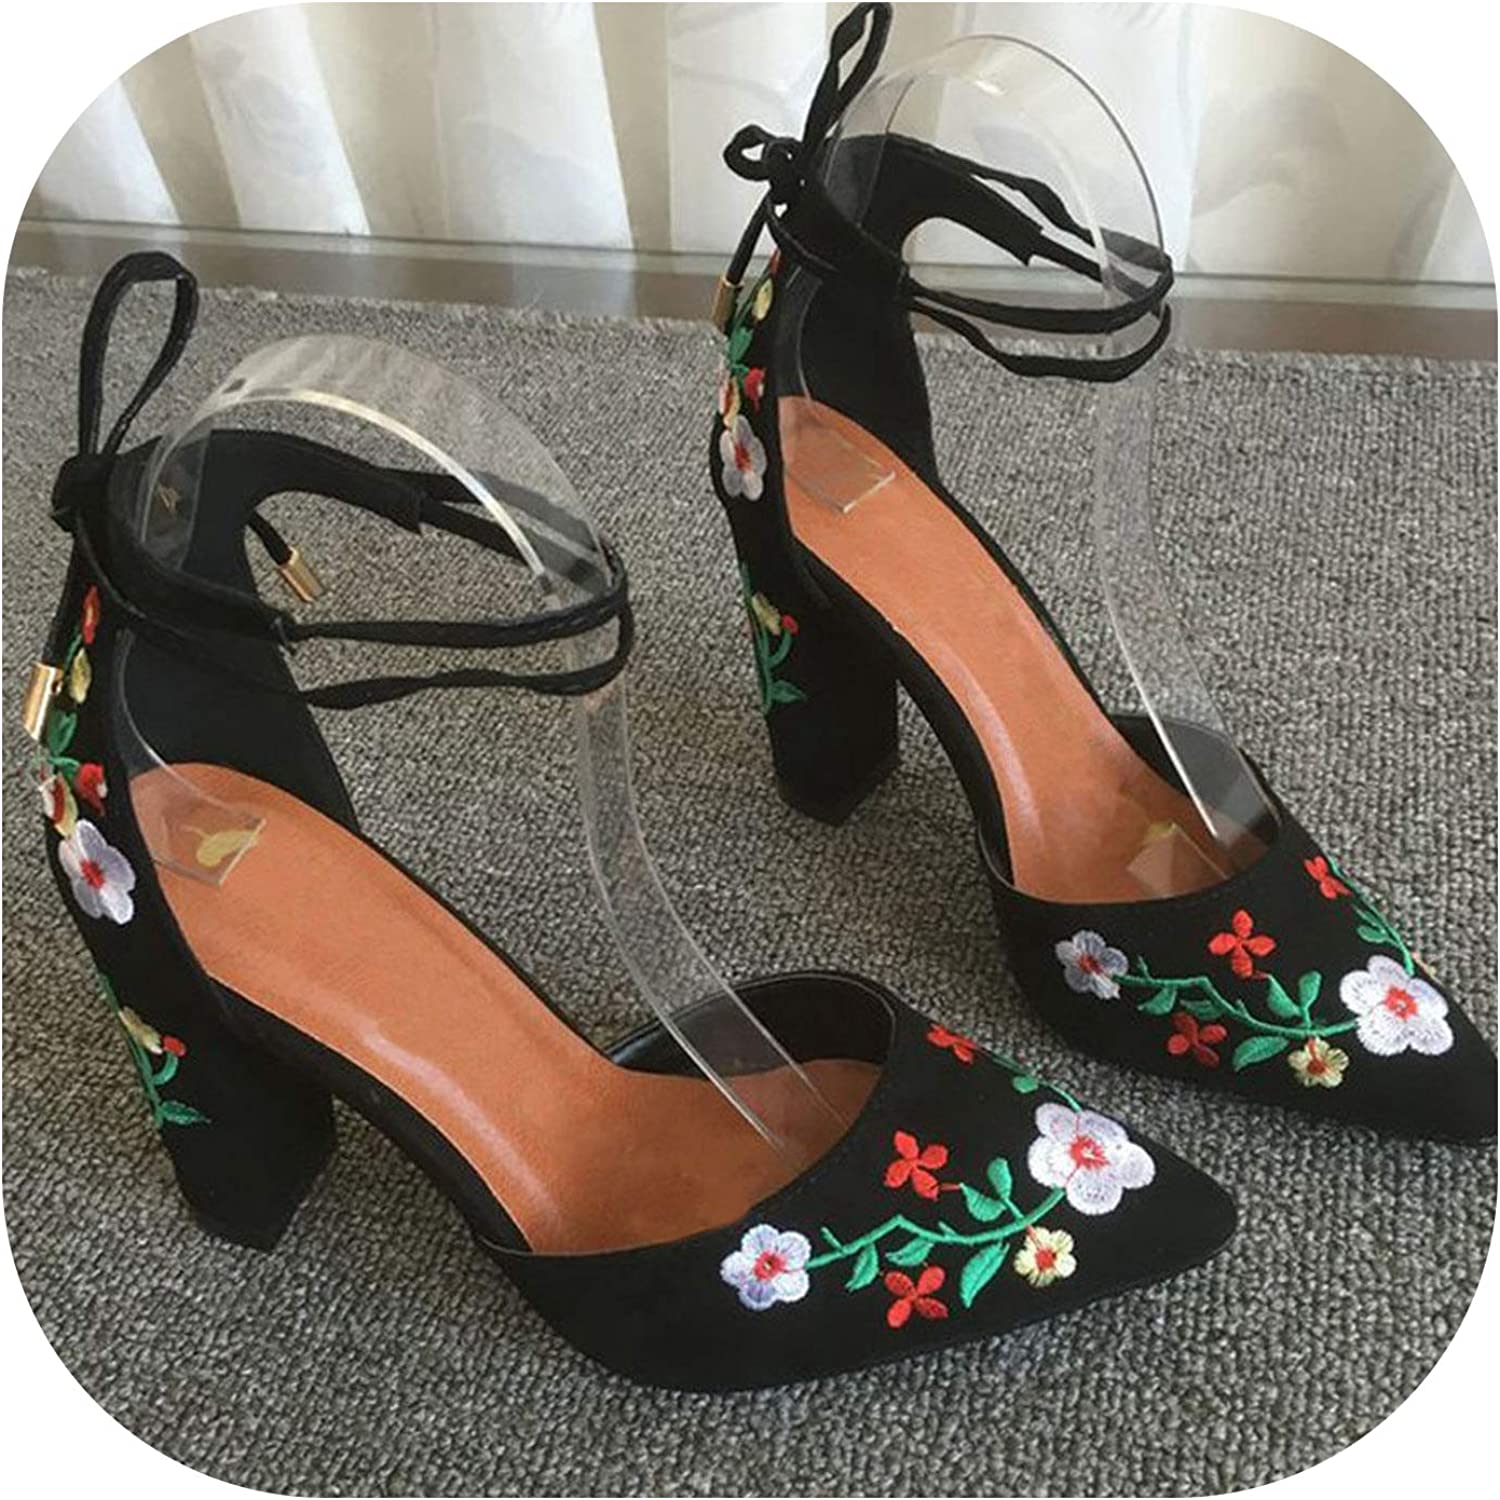 Women High Heels Embroidery Pumps Flower Ankle Strap Two Piece Sexy Wedding Pointed Toe